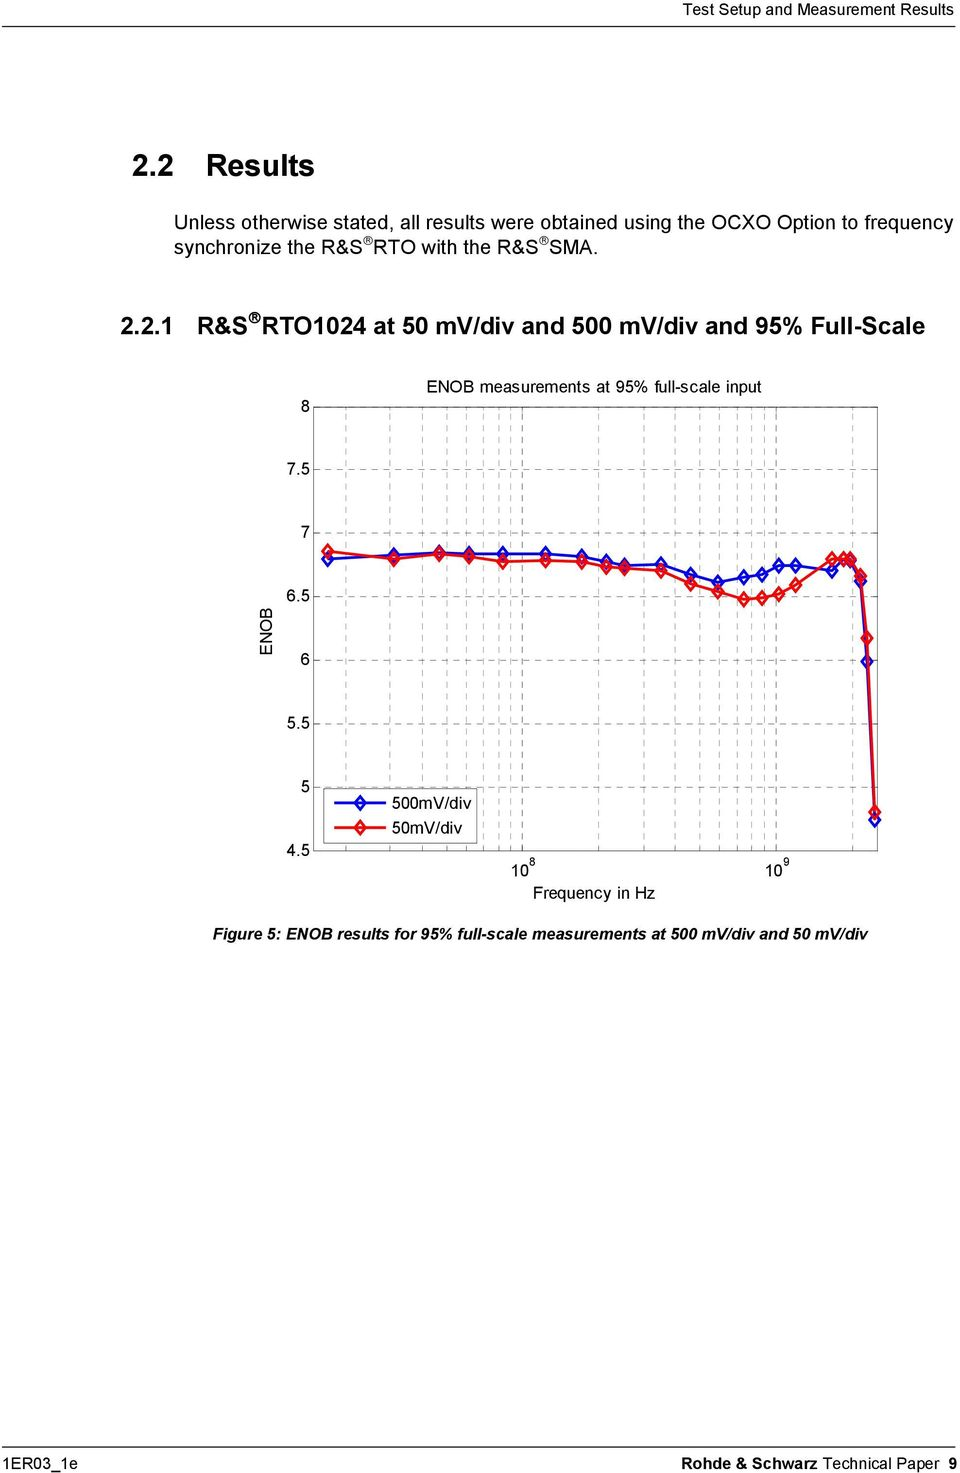 2.1 R&S RTO1024 at 50 mv/div and 500 mv/div and 95% Full-Scale 8 ENOB measurements at 95% full-scale input 7.